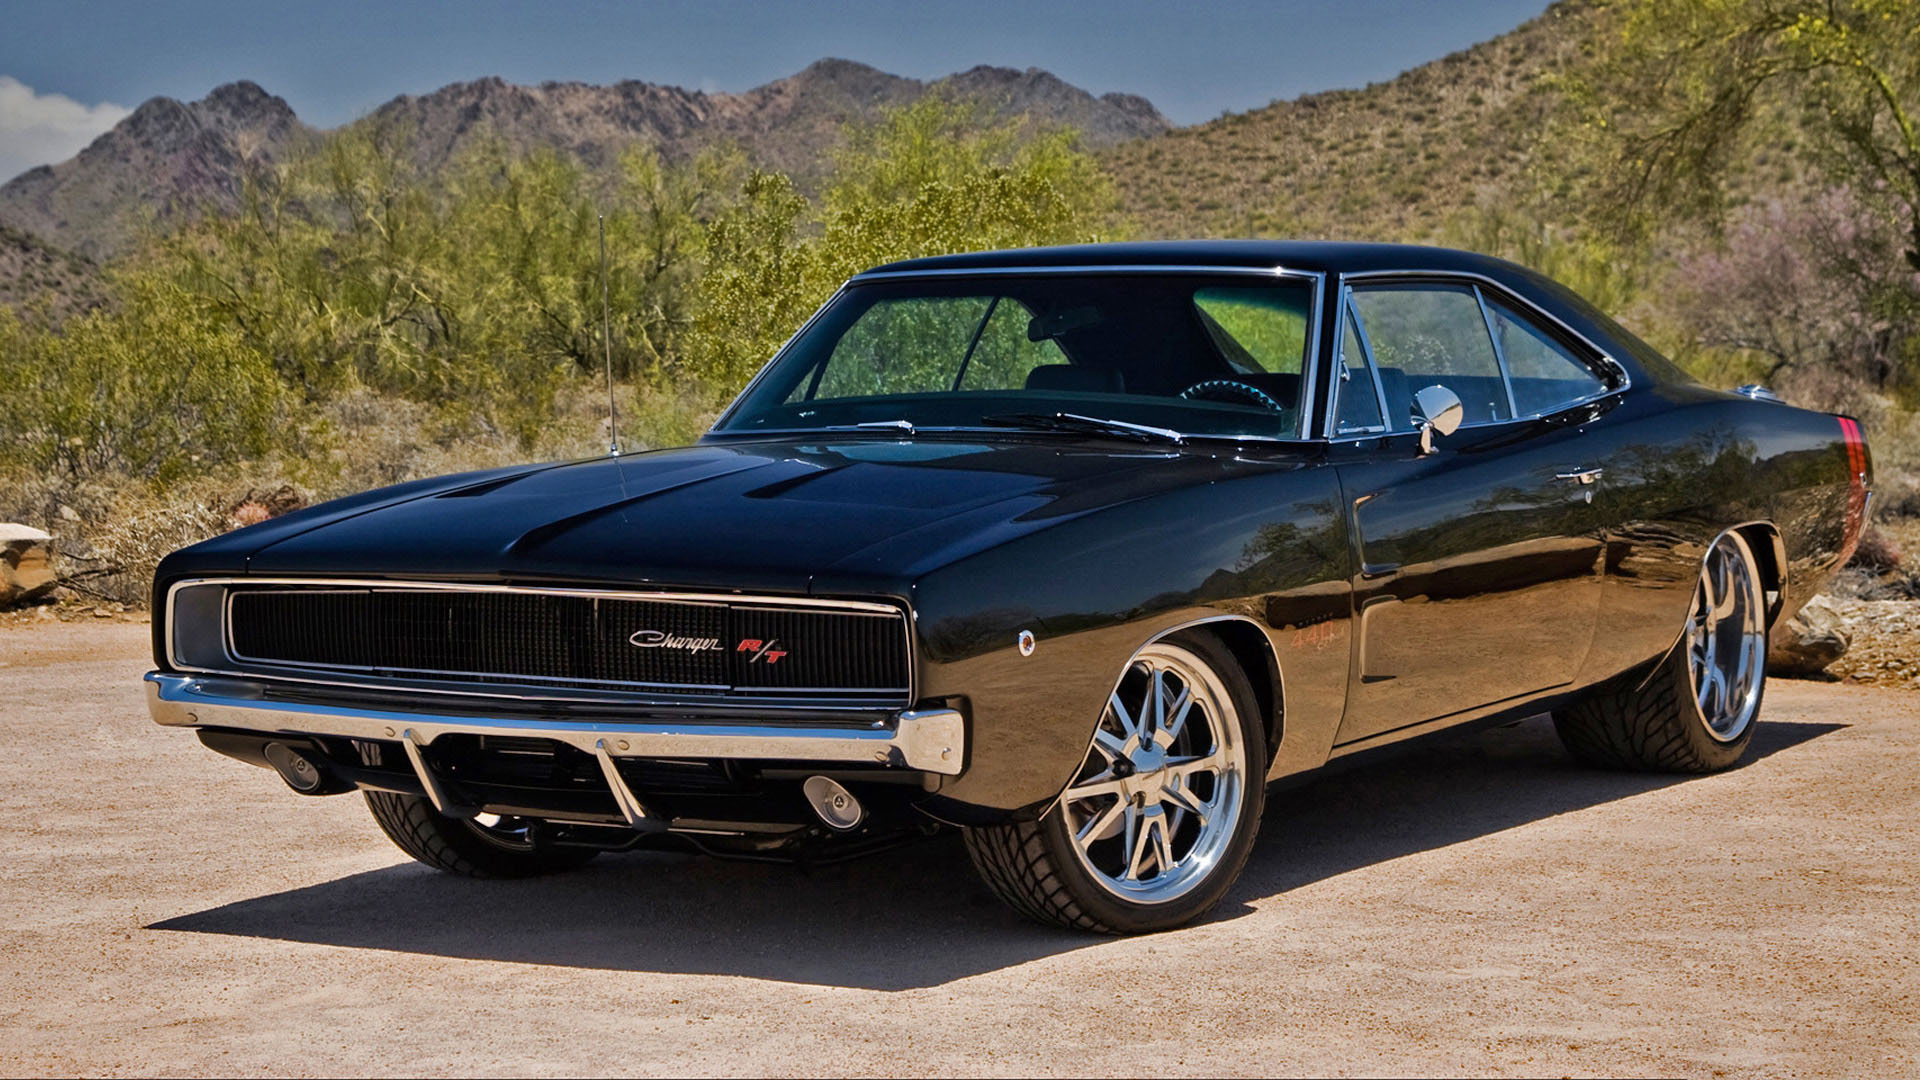 dodge-charger-rt-547febd02405a.jpg